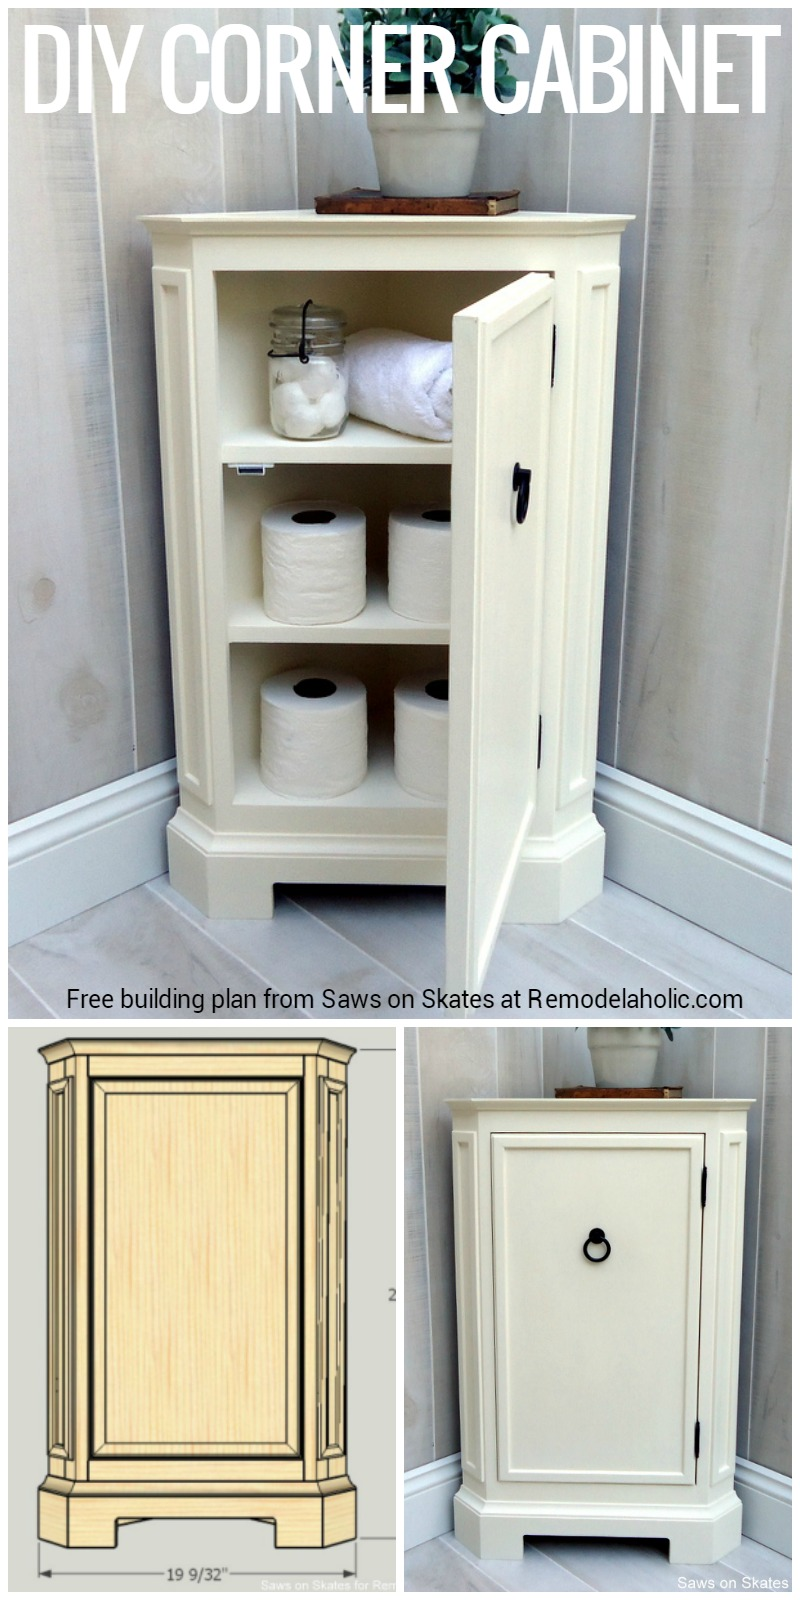 Build This Space Smart Corner Cabinet With The Free Building Plans From Saws On Skates